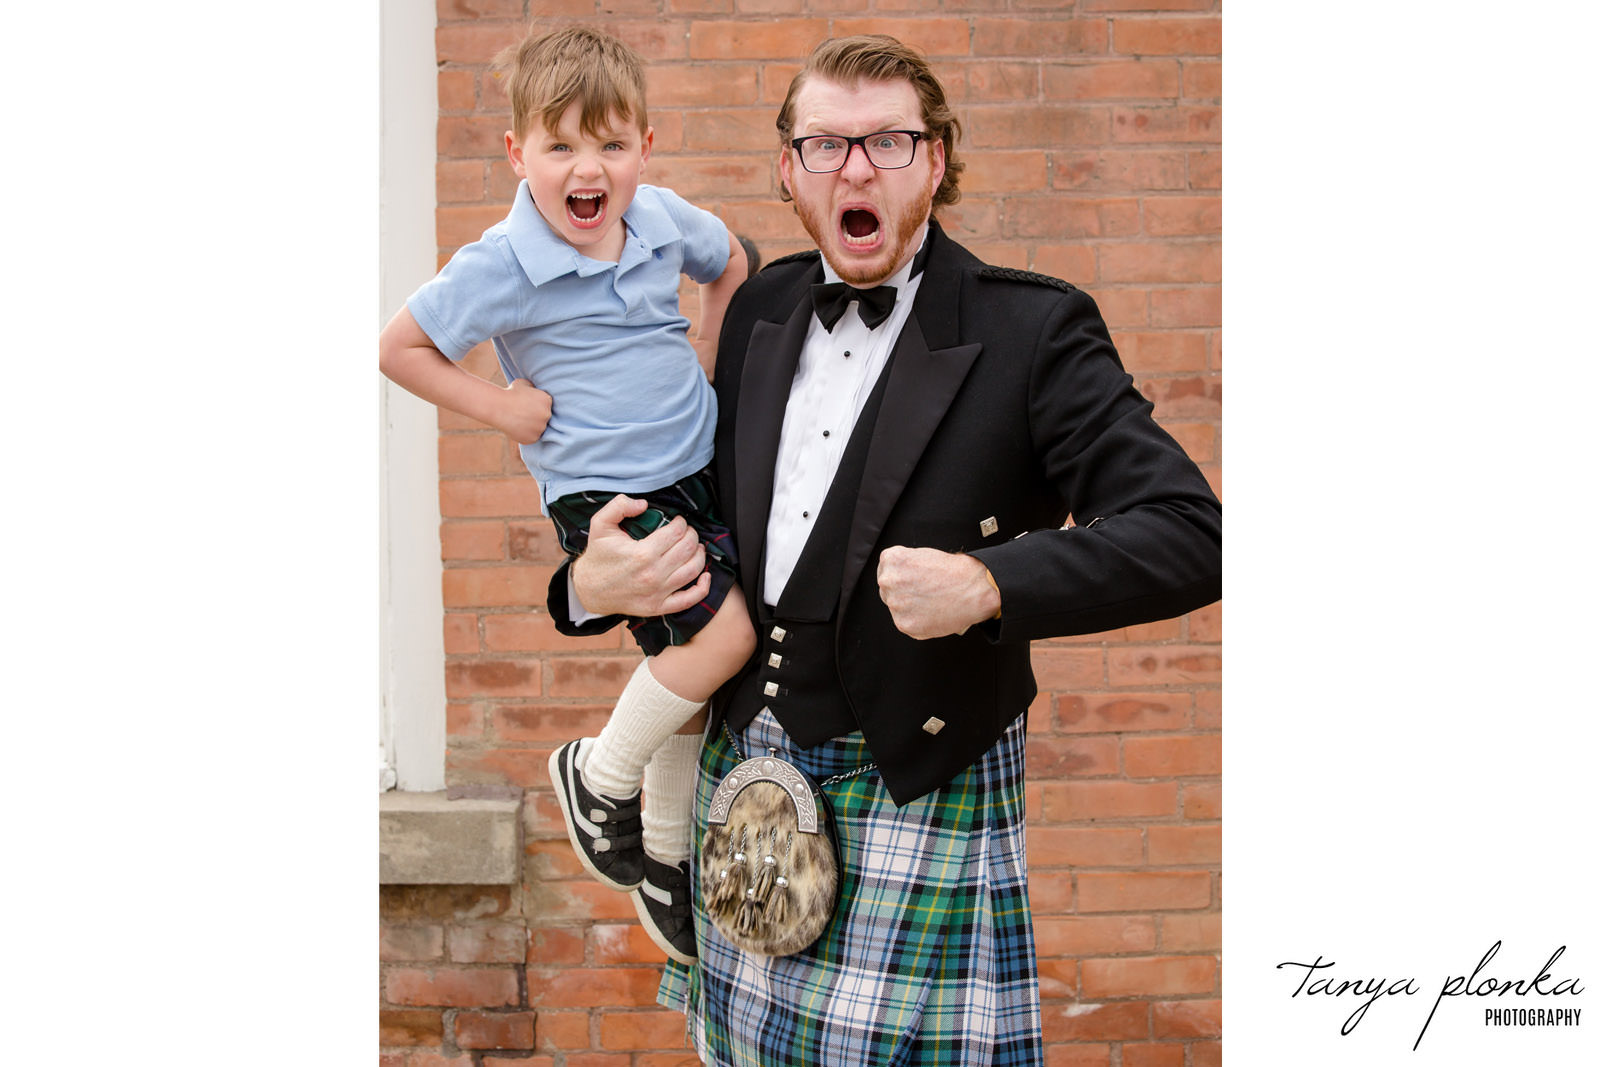 Dad and son wearing kilts at the Galt Museum yelling